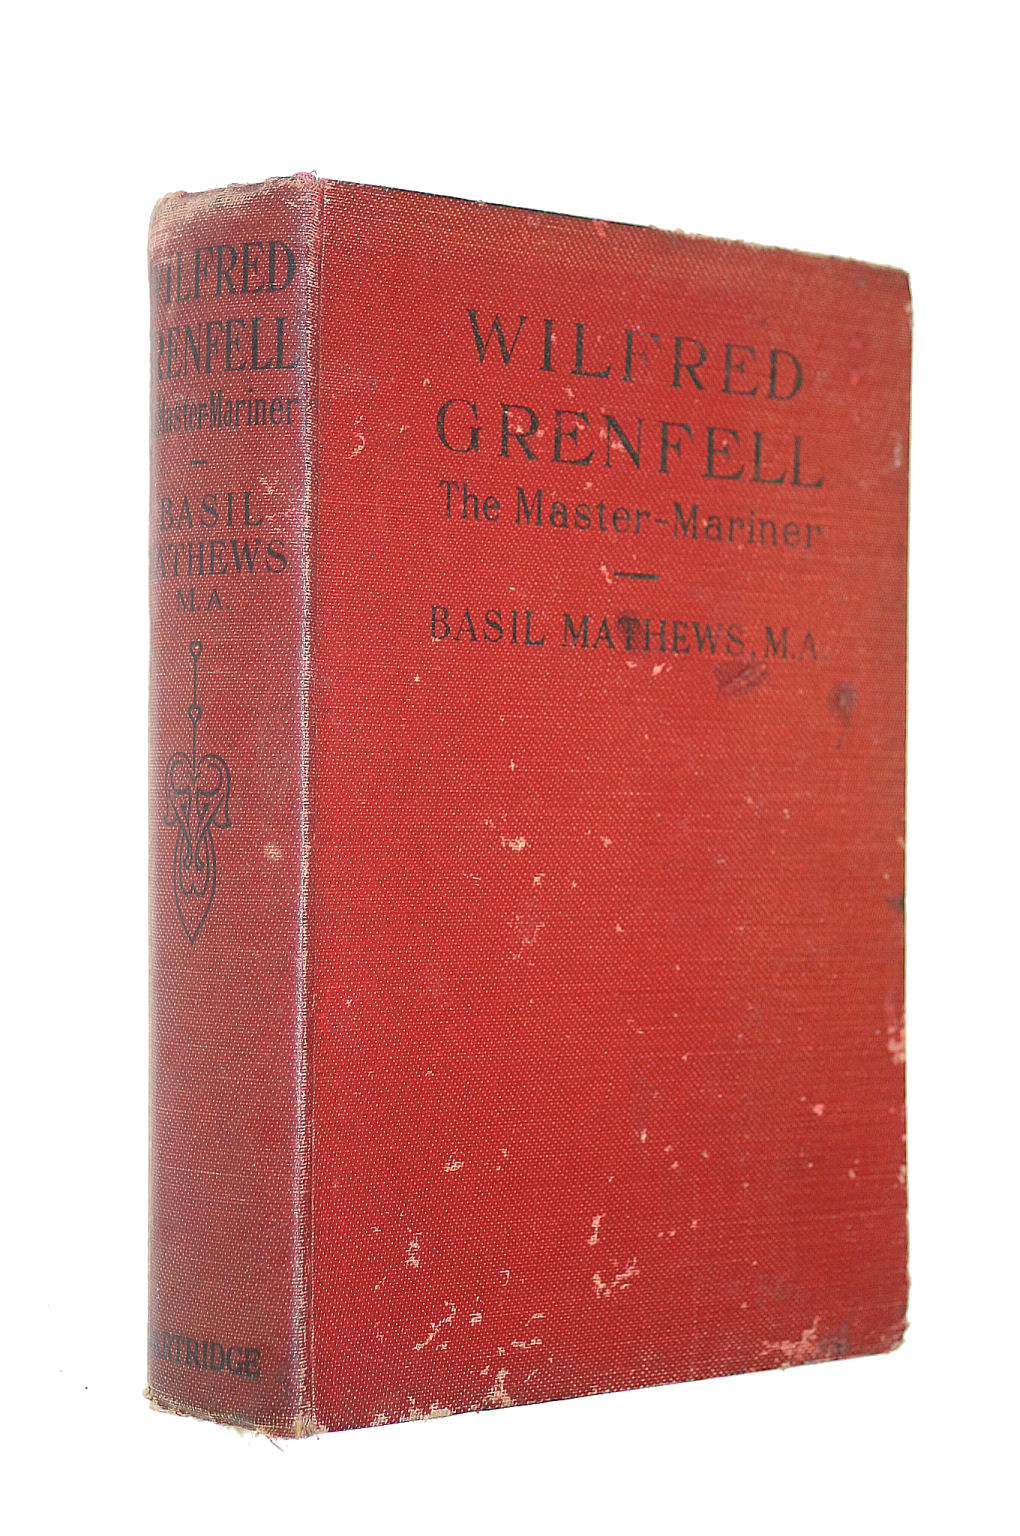 Image for WILFRED GRENFELL THE MASTER-MARINER